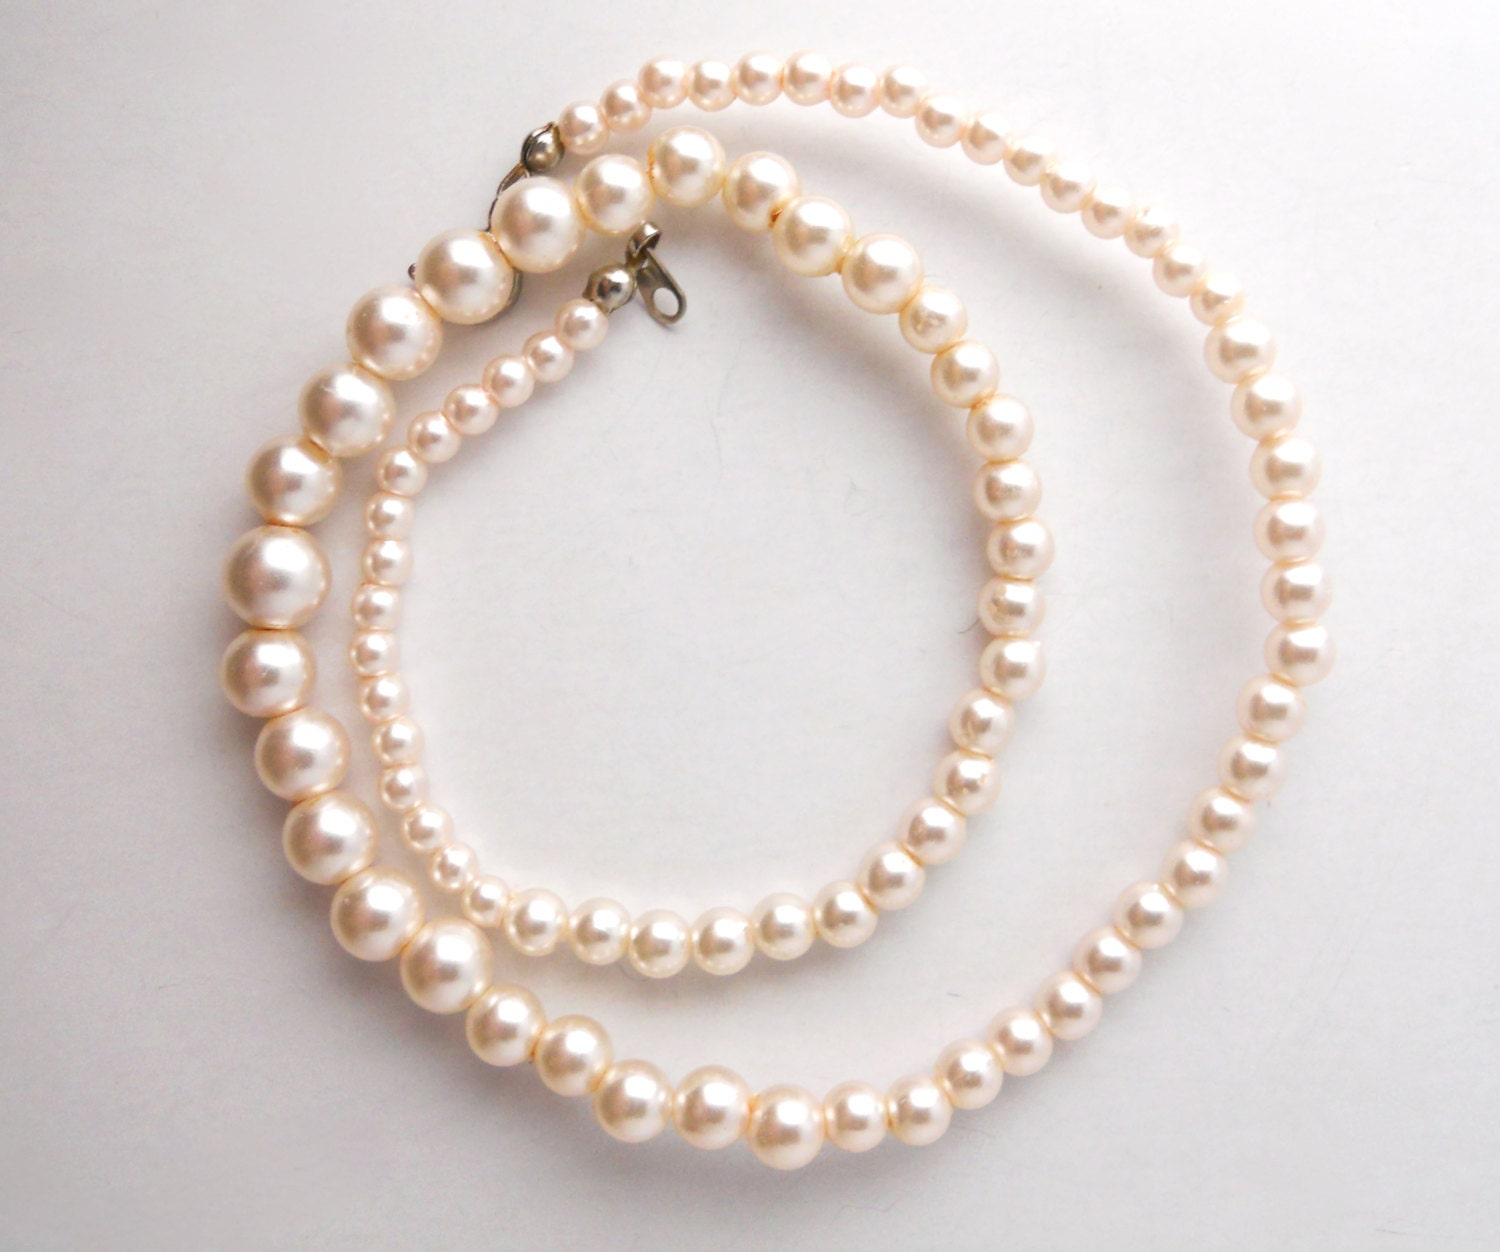 Single Strand Pearl Necklace: WEDDING FAUX PEARLS Single Strand Vintage 1950s Faux Pearl